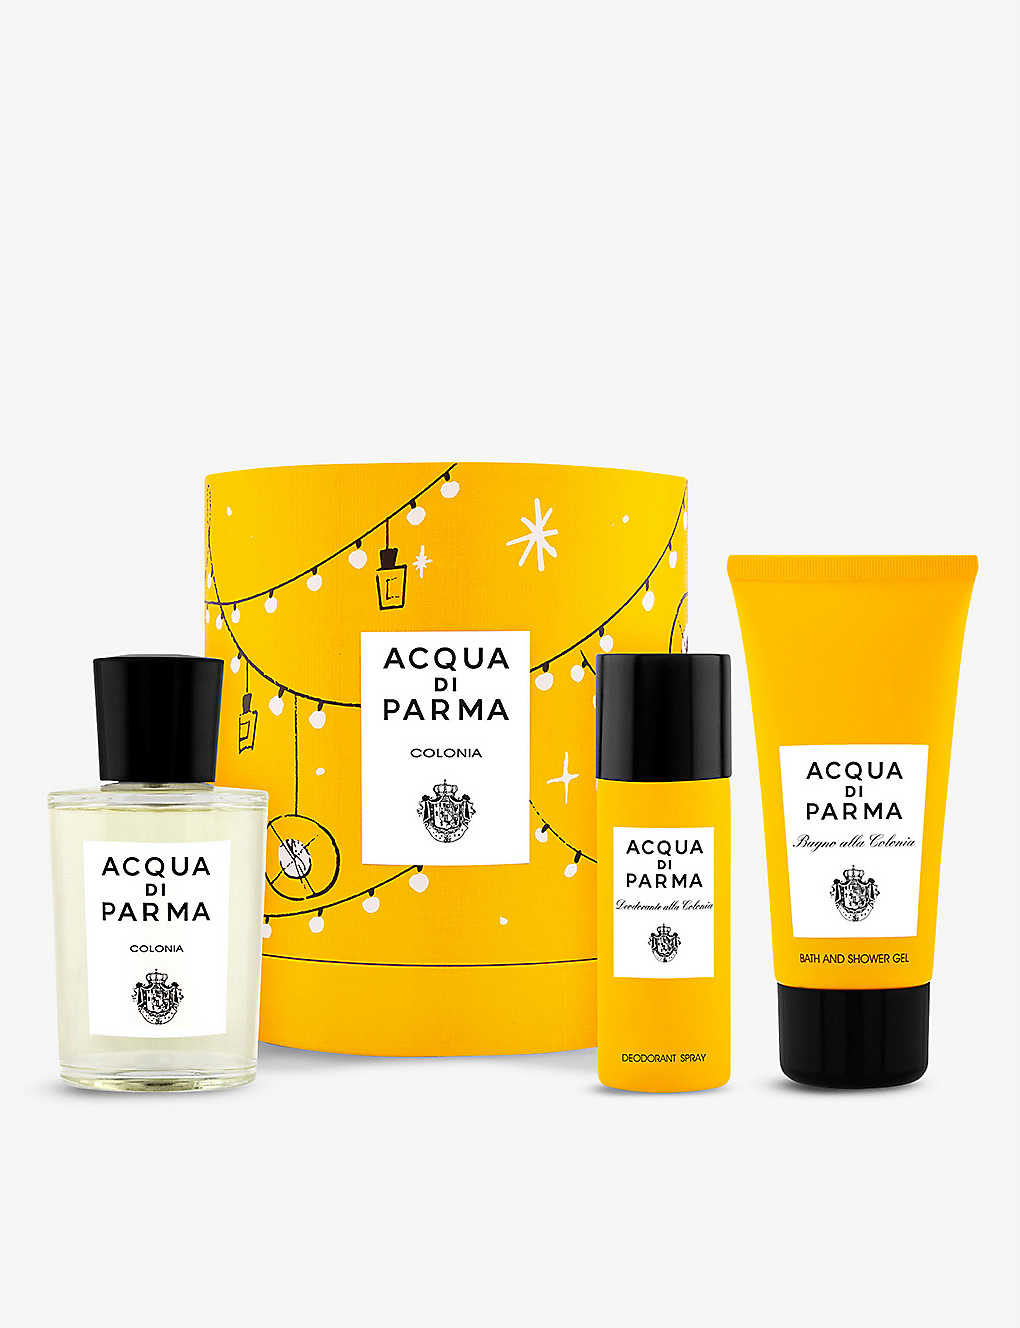 ACQUA DI PARMA: Colonia Coffret gift set of three